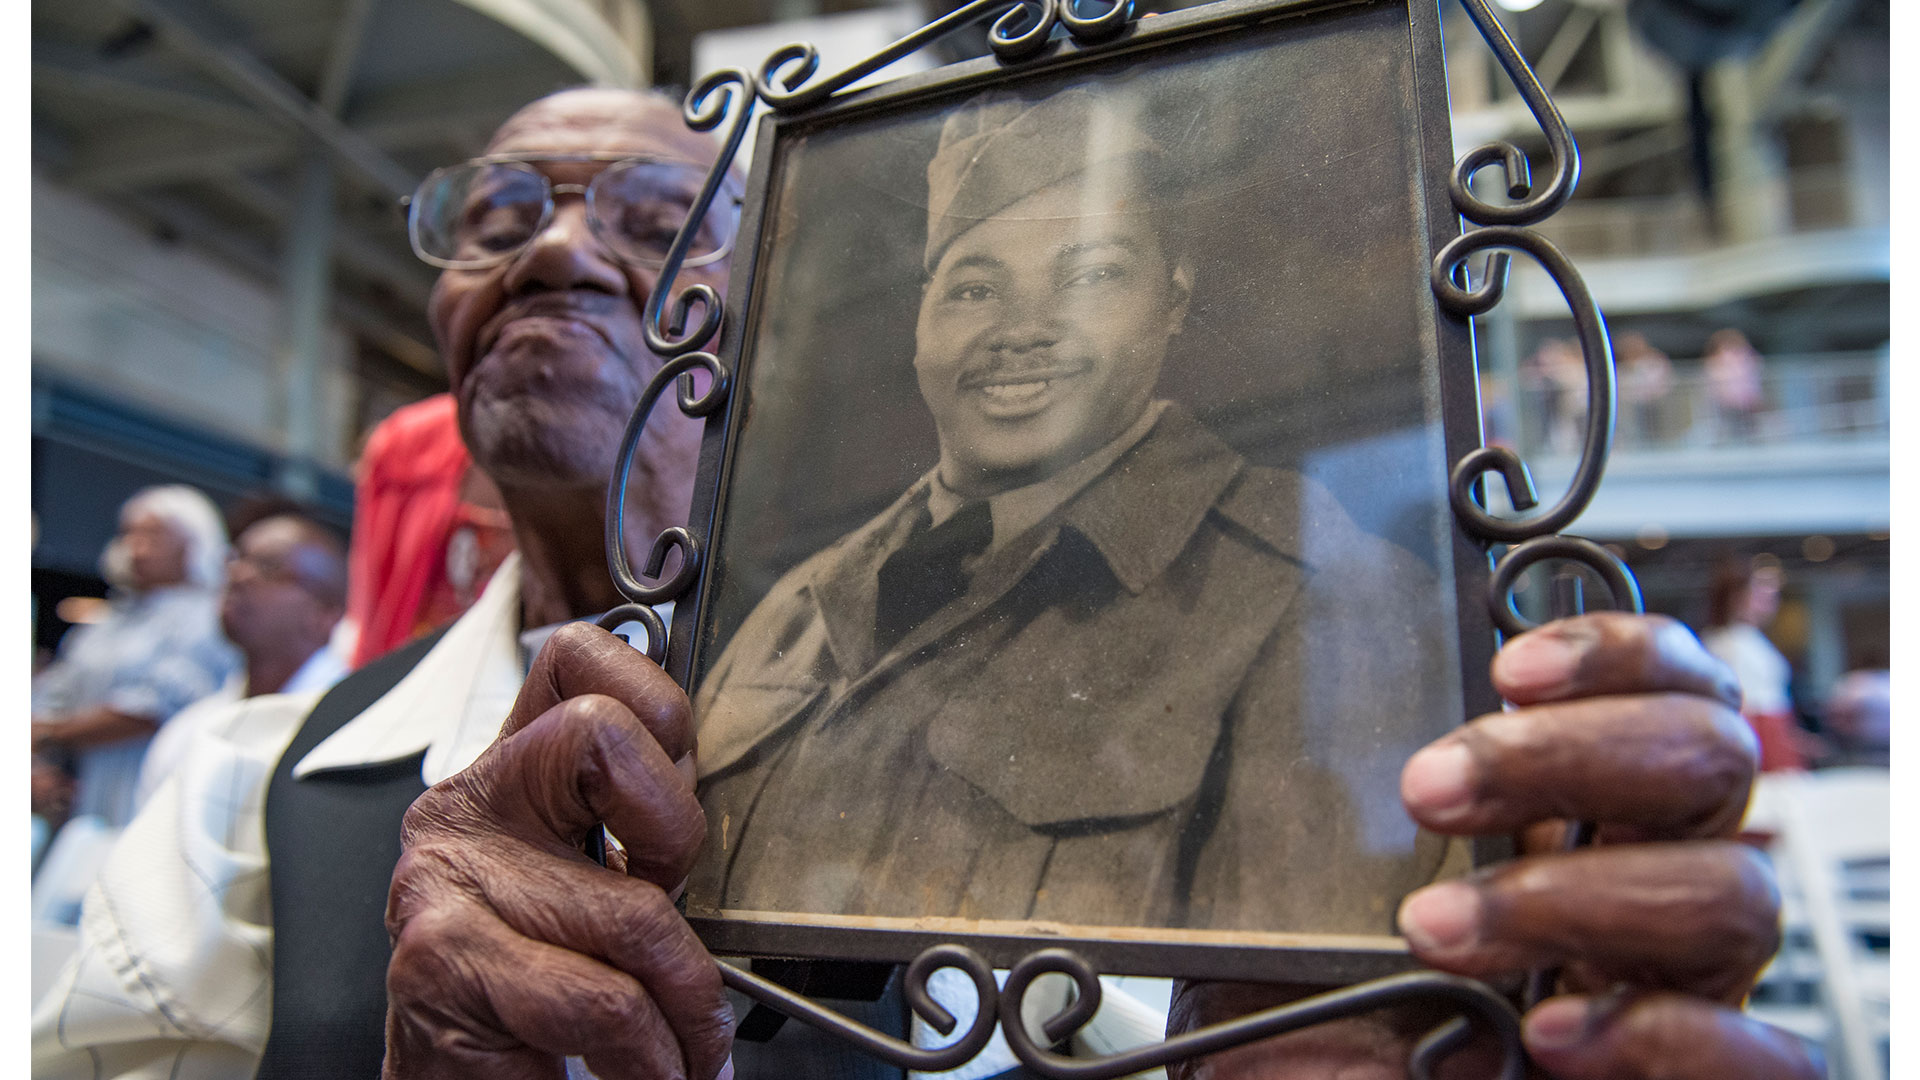 America's Oldest World War II Vet Celebrates His 110th Birthday with Party in New Orleans